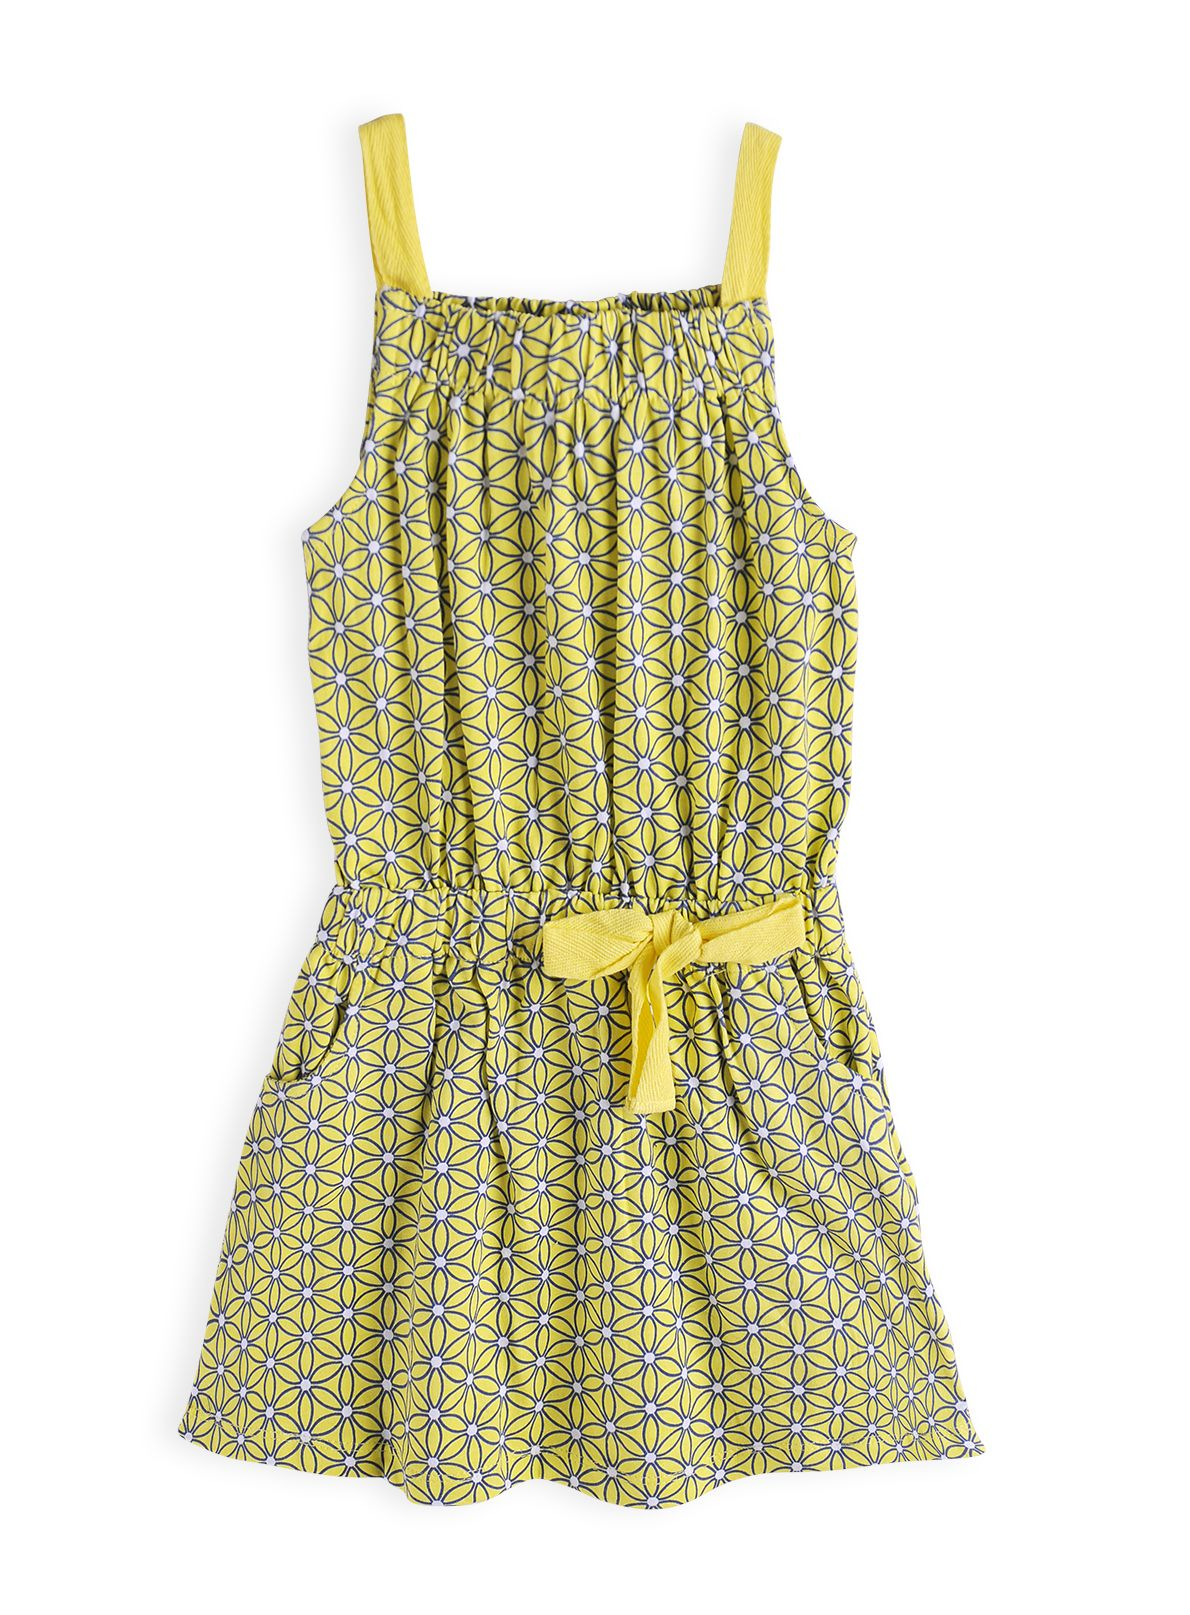 Girls geometric daisy knit dress